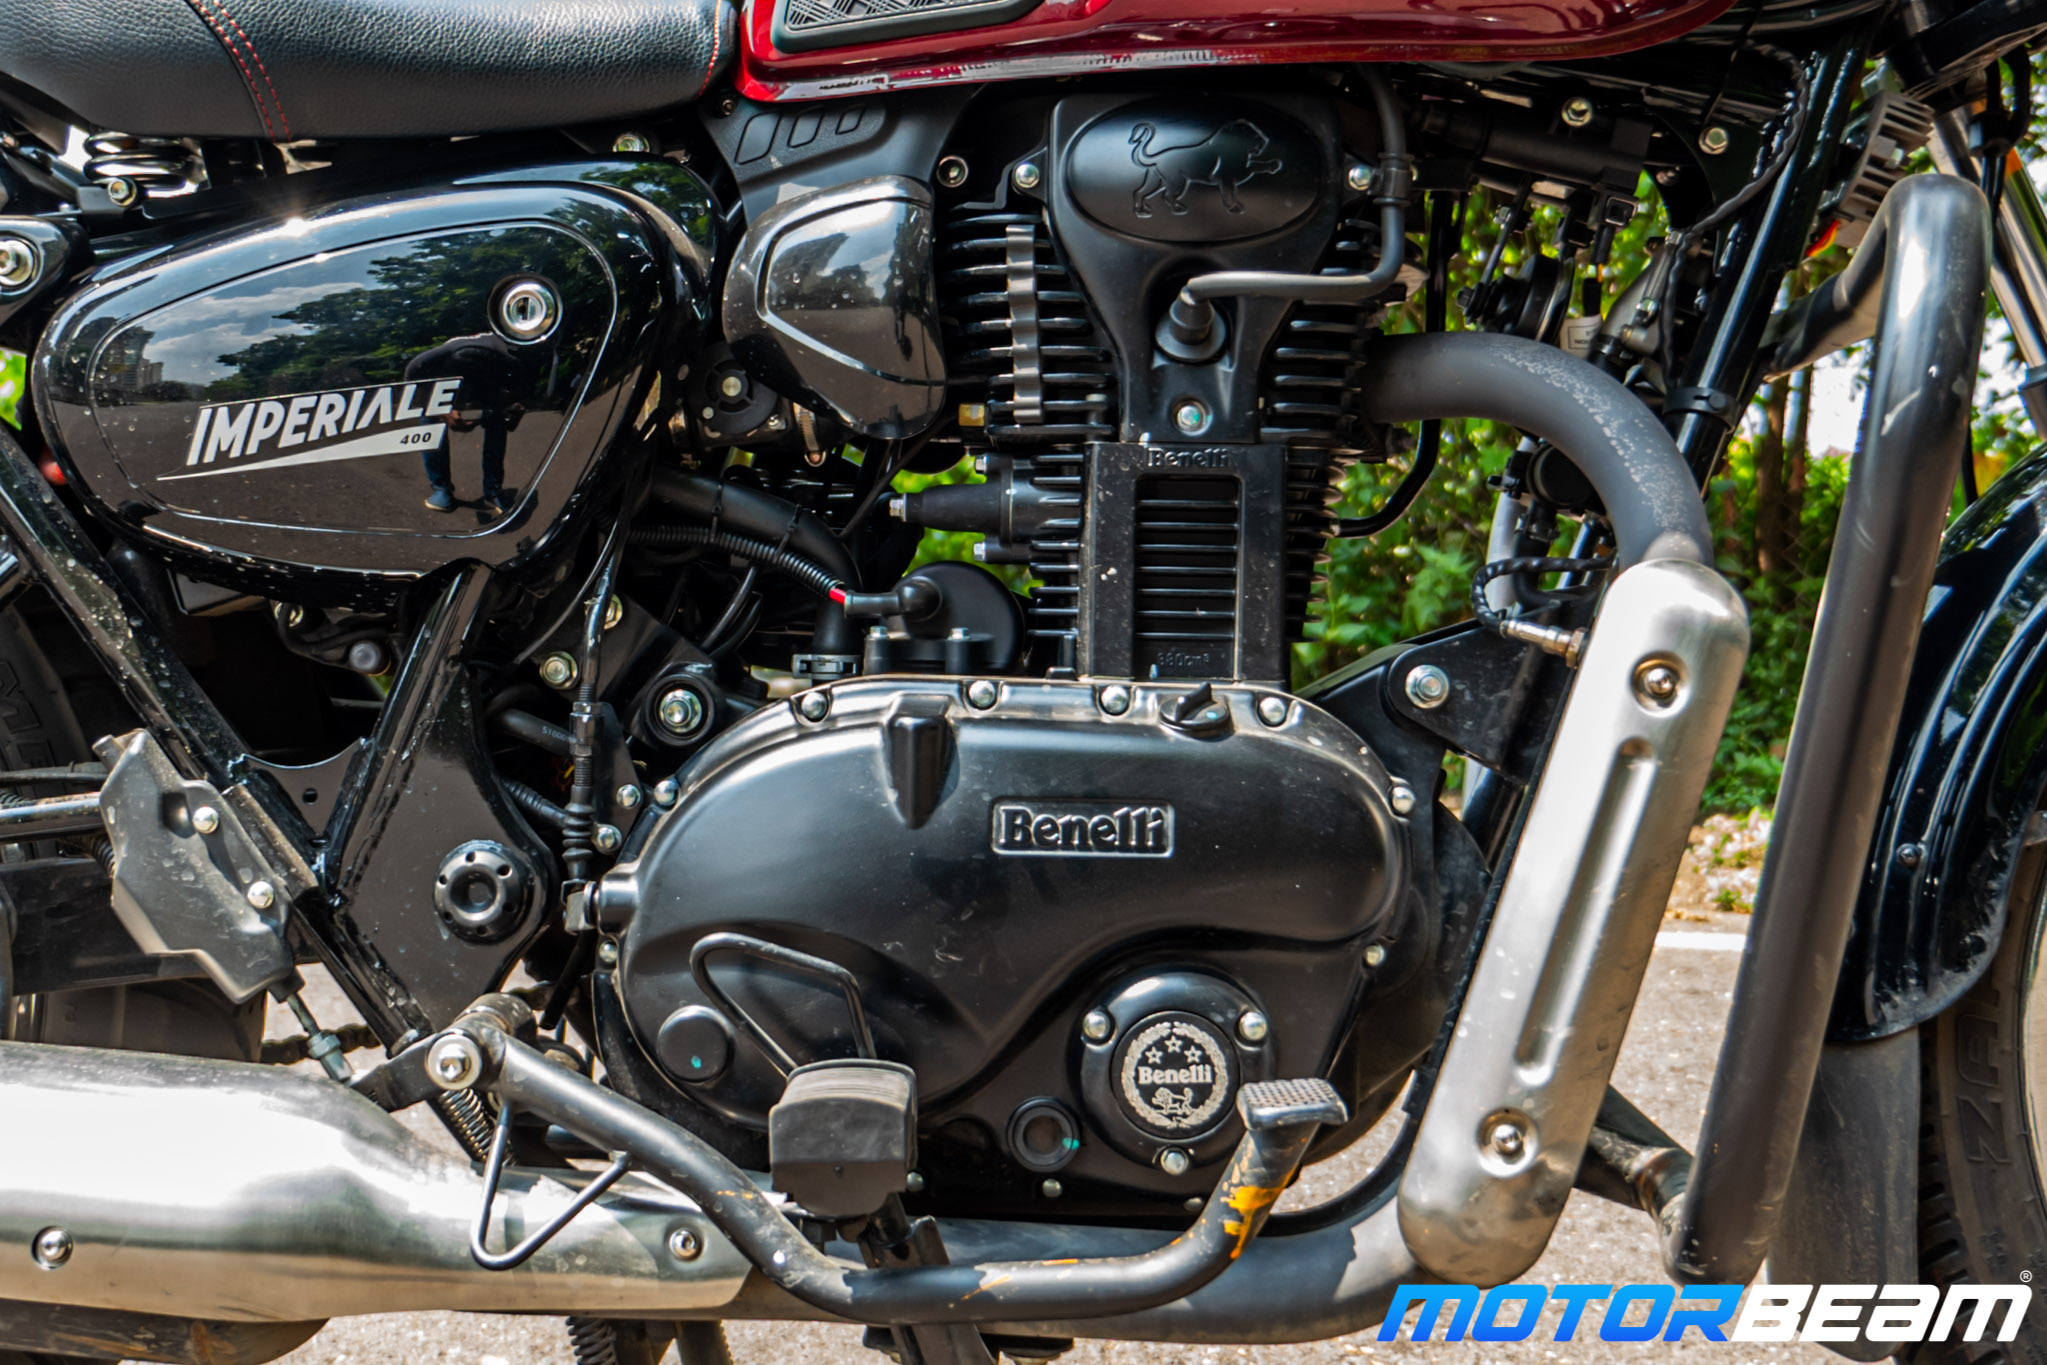 2020 Benelli Imperiale 400 Review 26